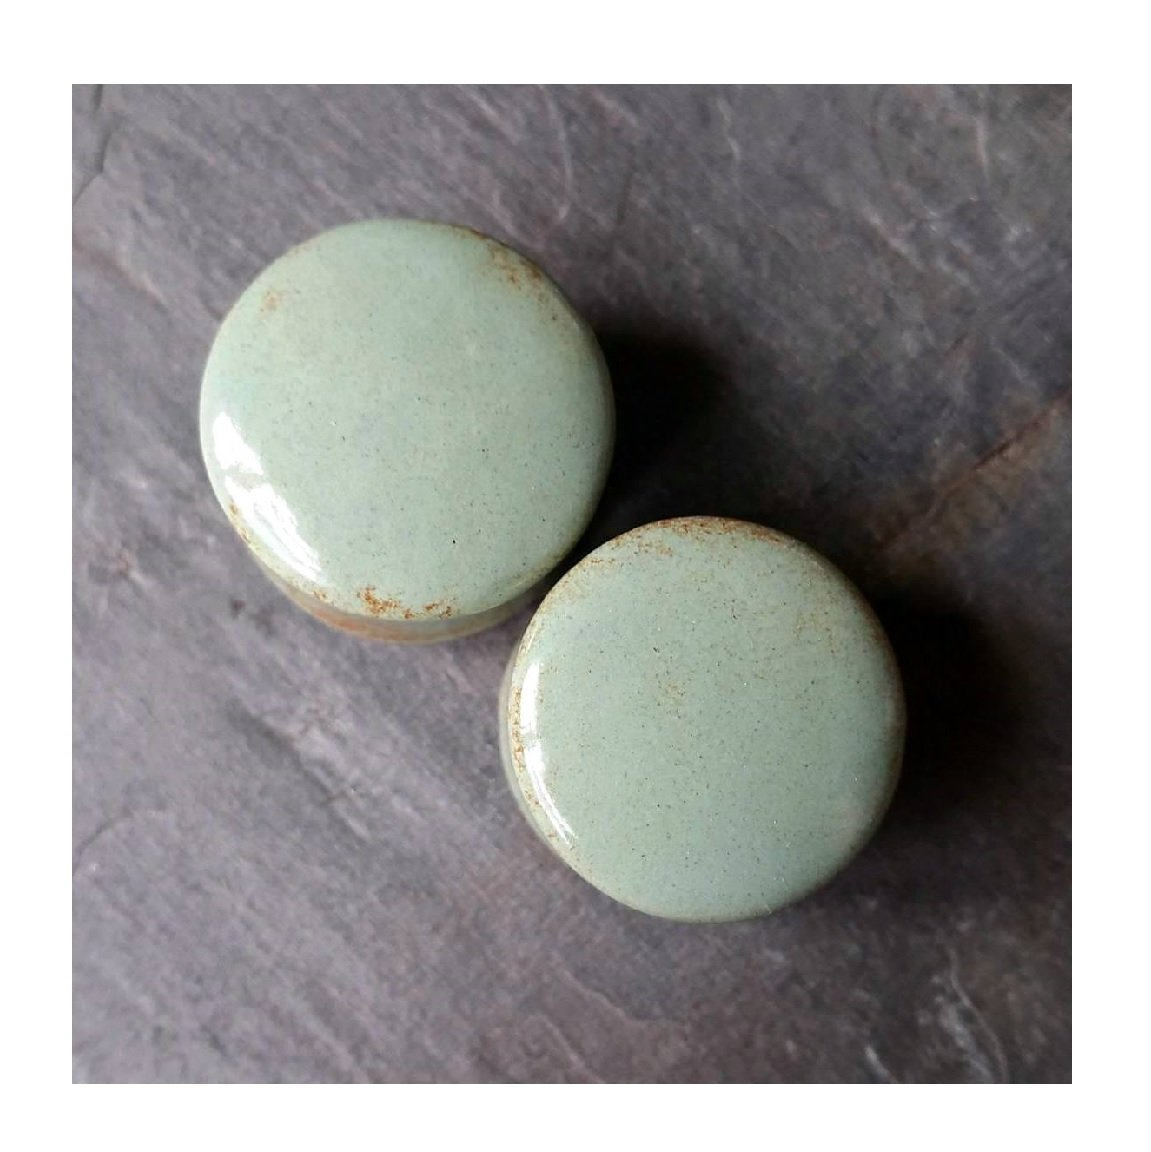 Pair - Seafoam Ocean Glass Blue/ Green Ceramic Ear Plugs Organic Handmade double-flared gauges Essential Oil Diffuser (32mm 1-1/4in) by Imperial Plugs